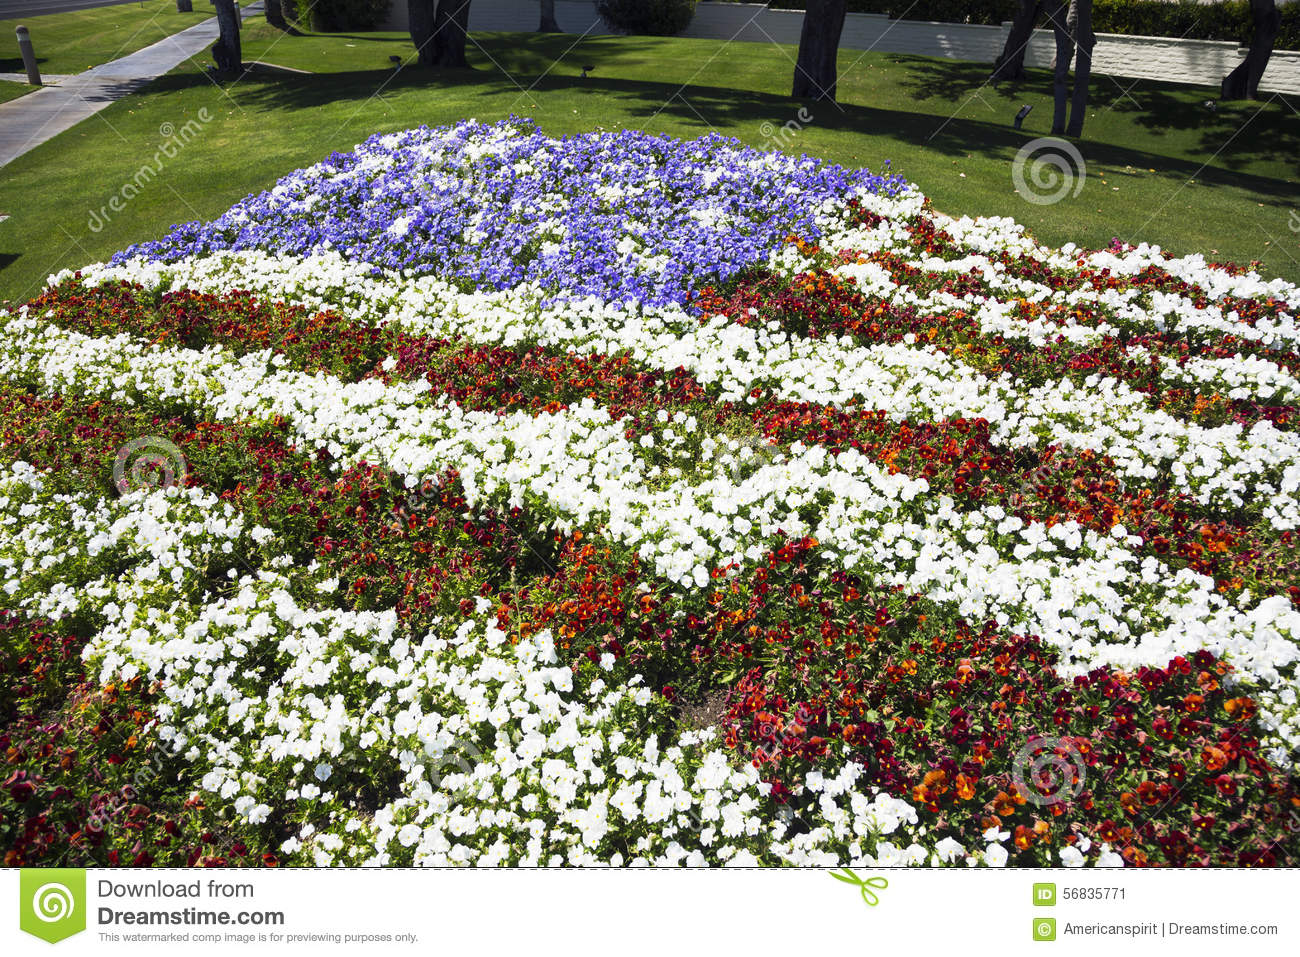 Palm springs california usa april 12 2015 us flag in flowers download palm springs california usa april 12 2015 us flag in mightylinksfo